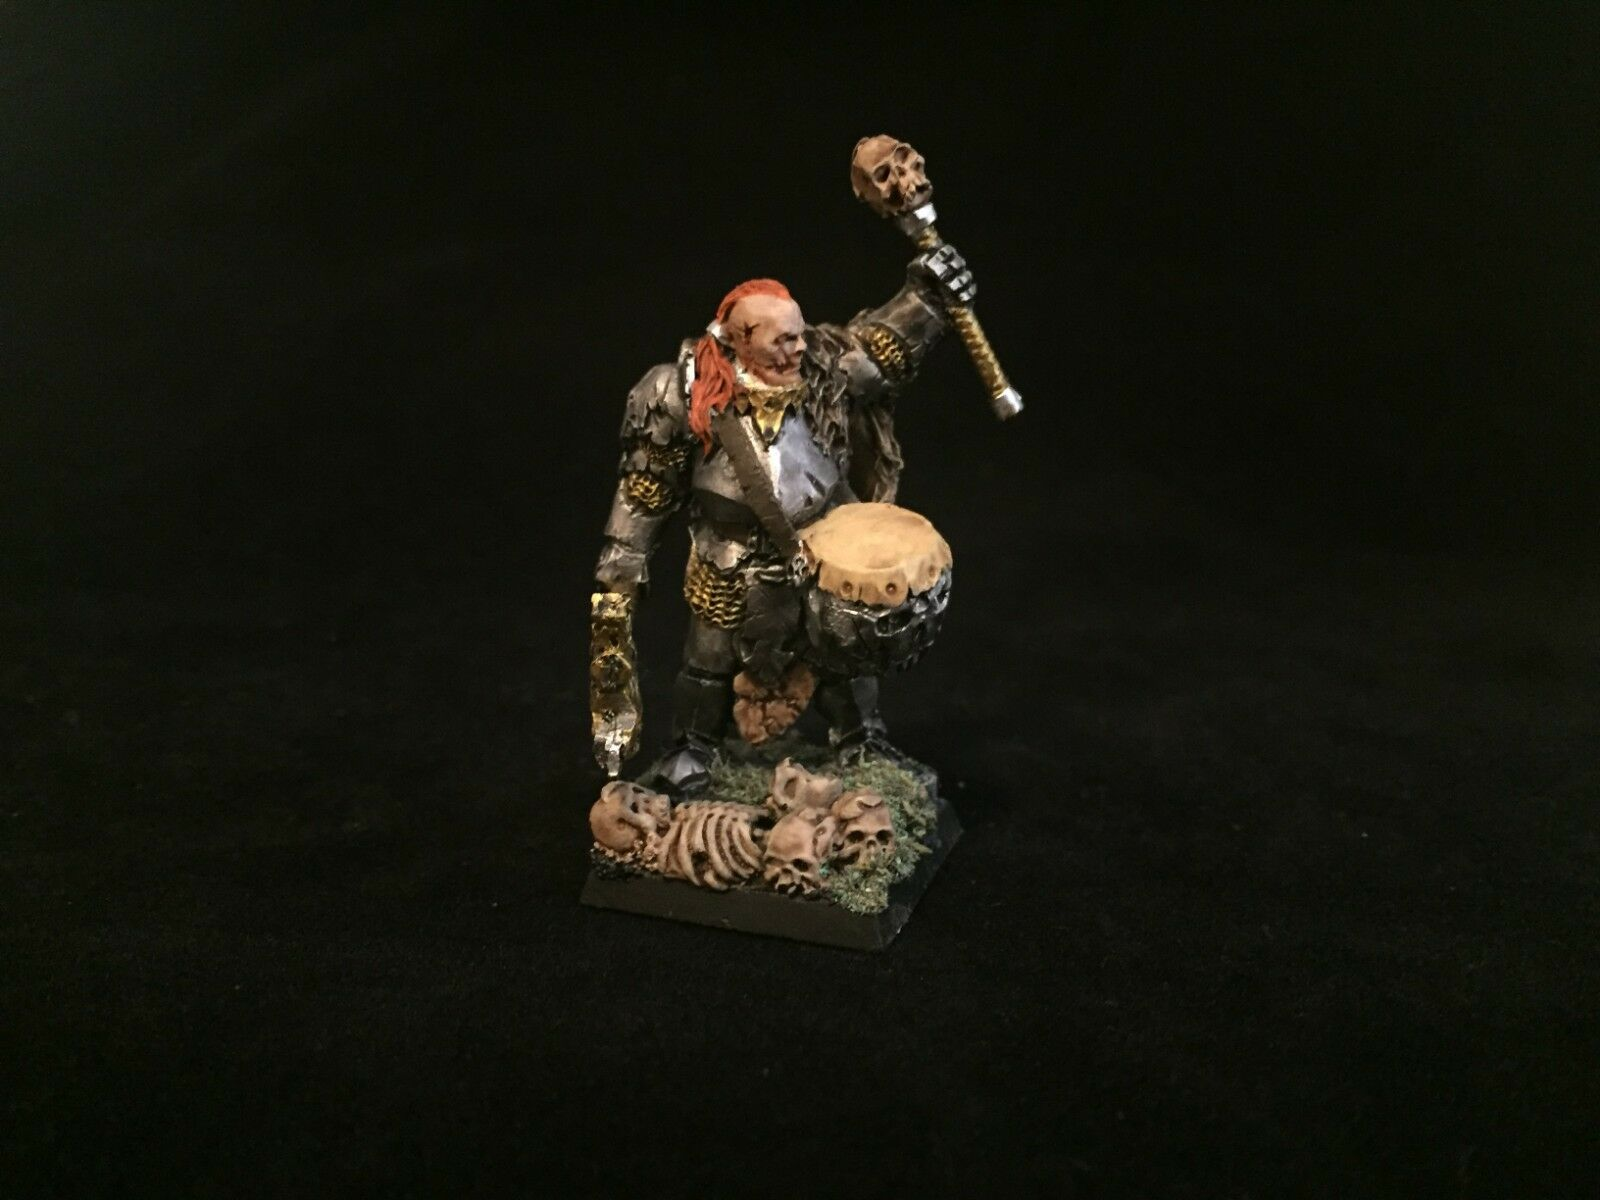 Painted Reaper Miniature D&D RPG Tabletop Fantasy Dungeon and Dragons